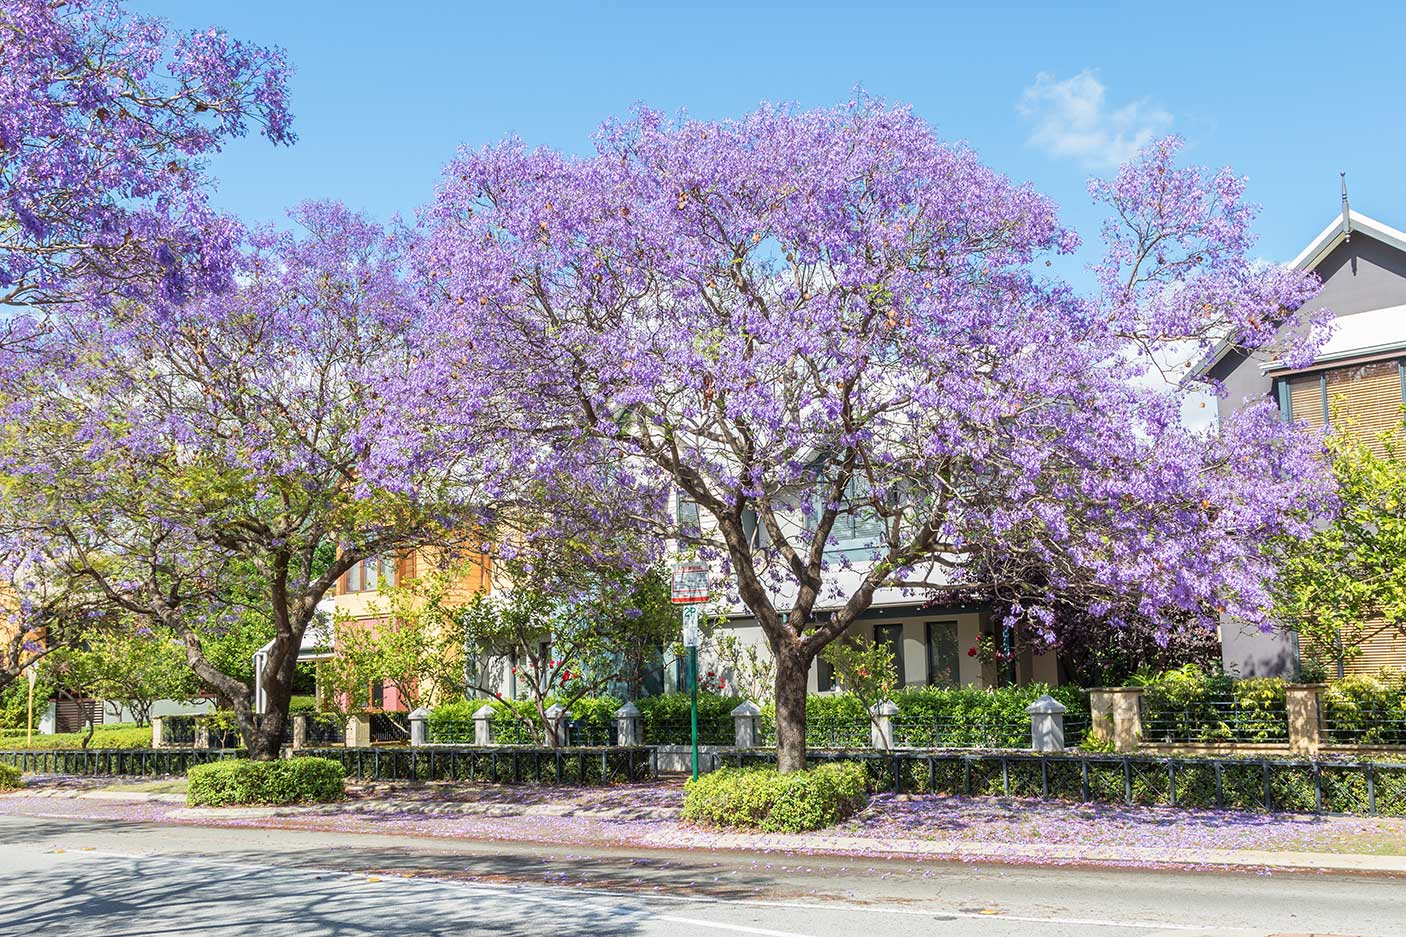 Jacaranda trees blooming in front of townhouses in the suburb of Subiaco in Perth, Western Australia.